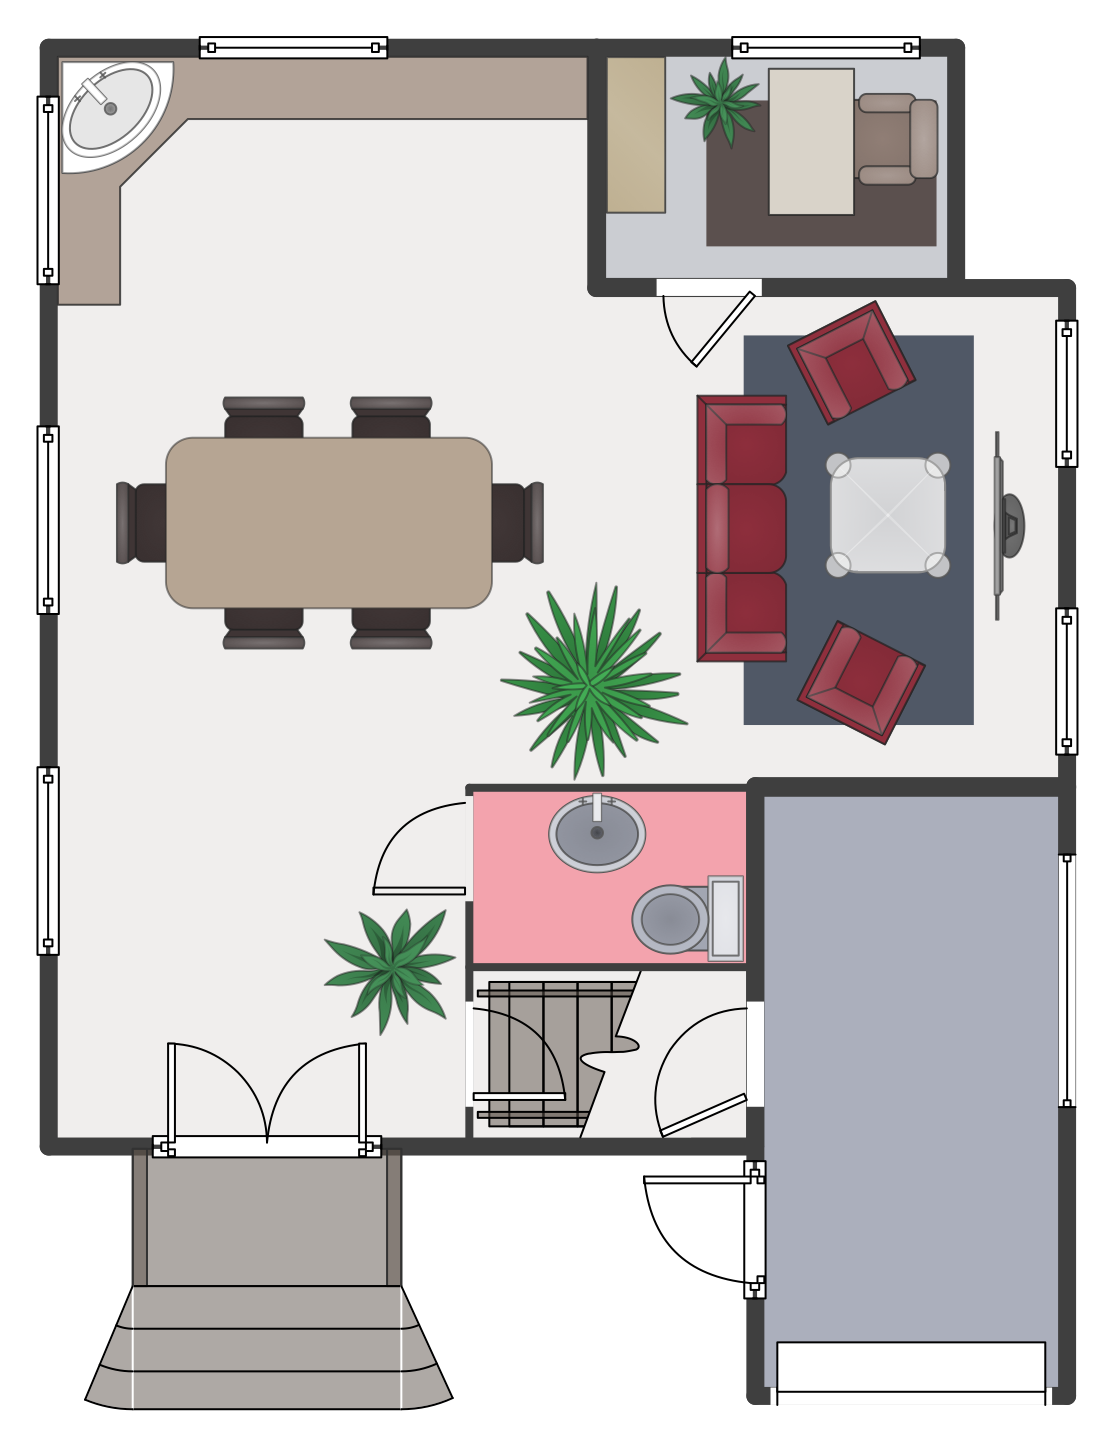 Ground Floor Plan This Example Was Created In Conceptdraw Pro Using The Libraries From The Floor P Floor Plans Interior Design Furniture Floor Plan Symbols